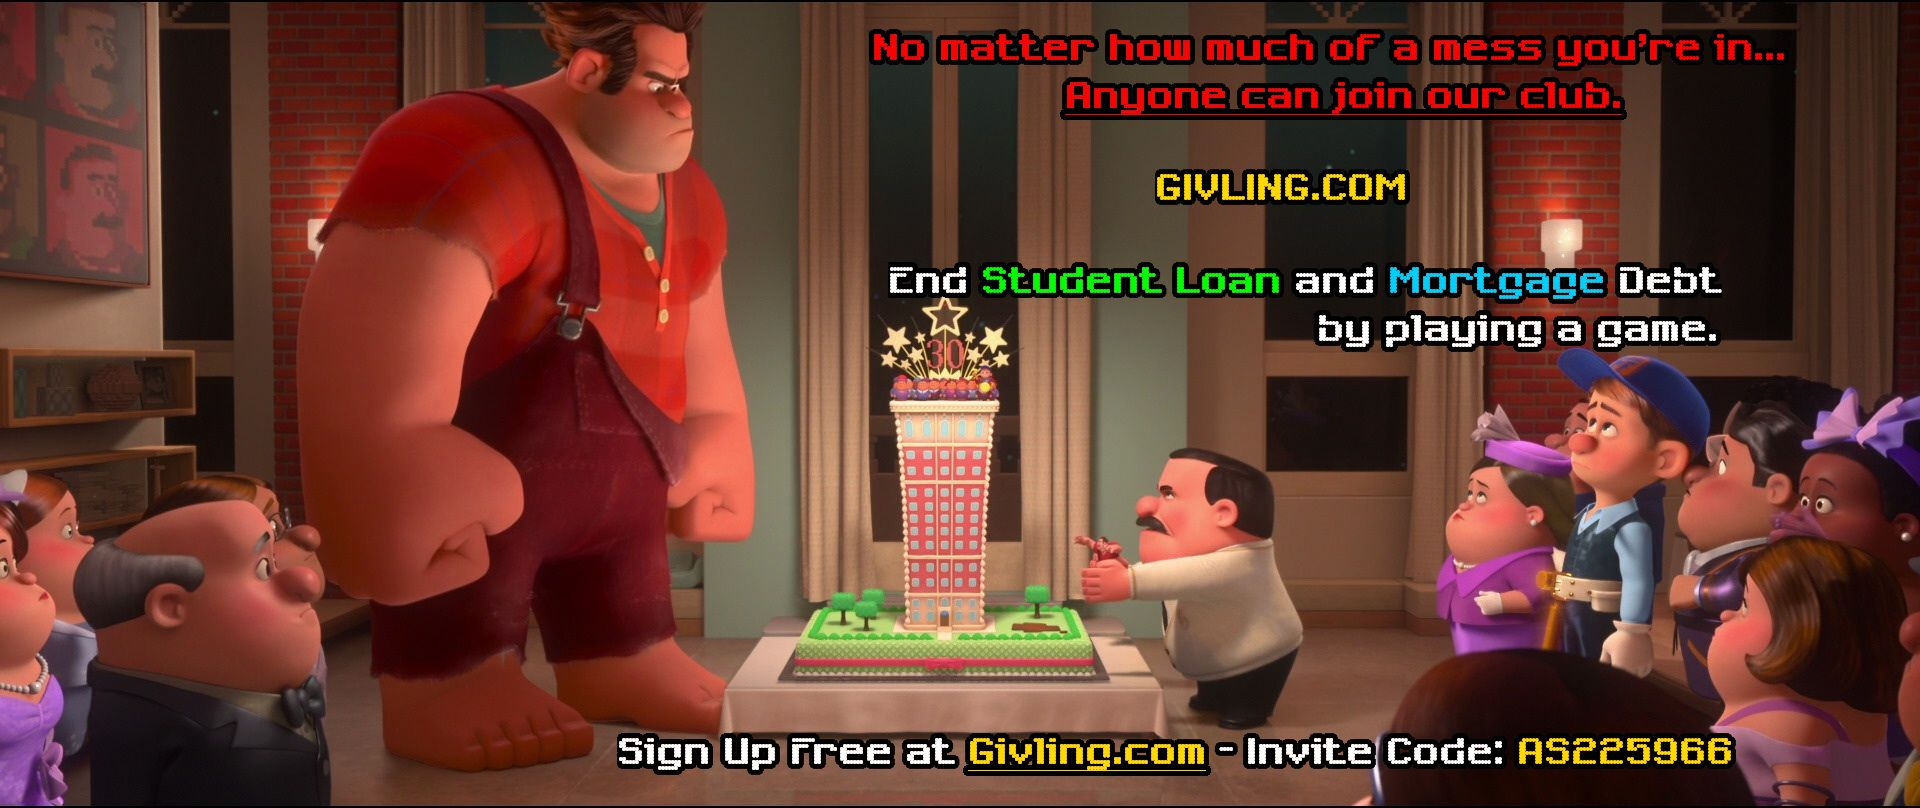 No cuts no butts no coconuts Givling Invite Code AS225966